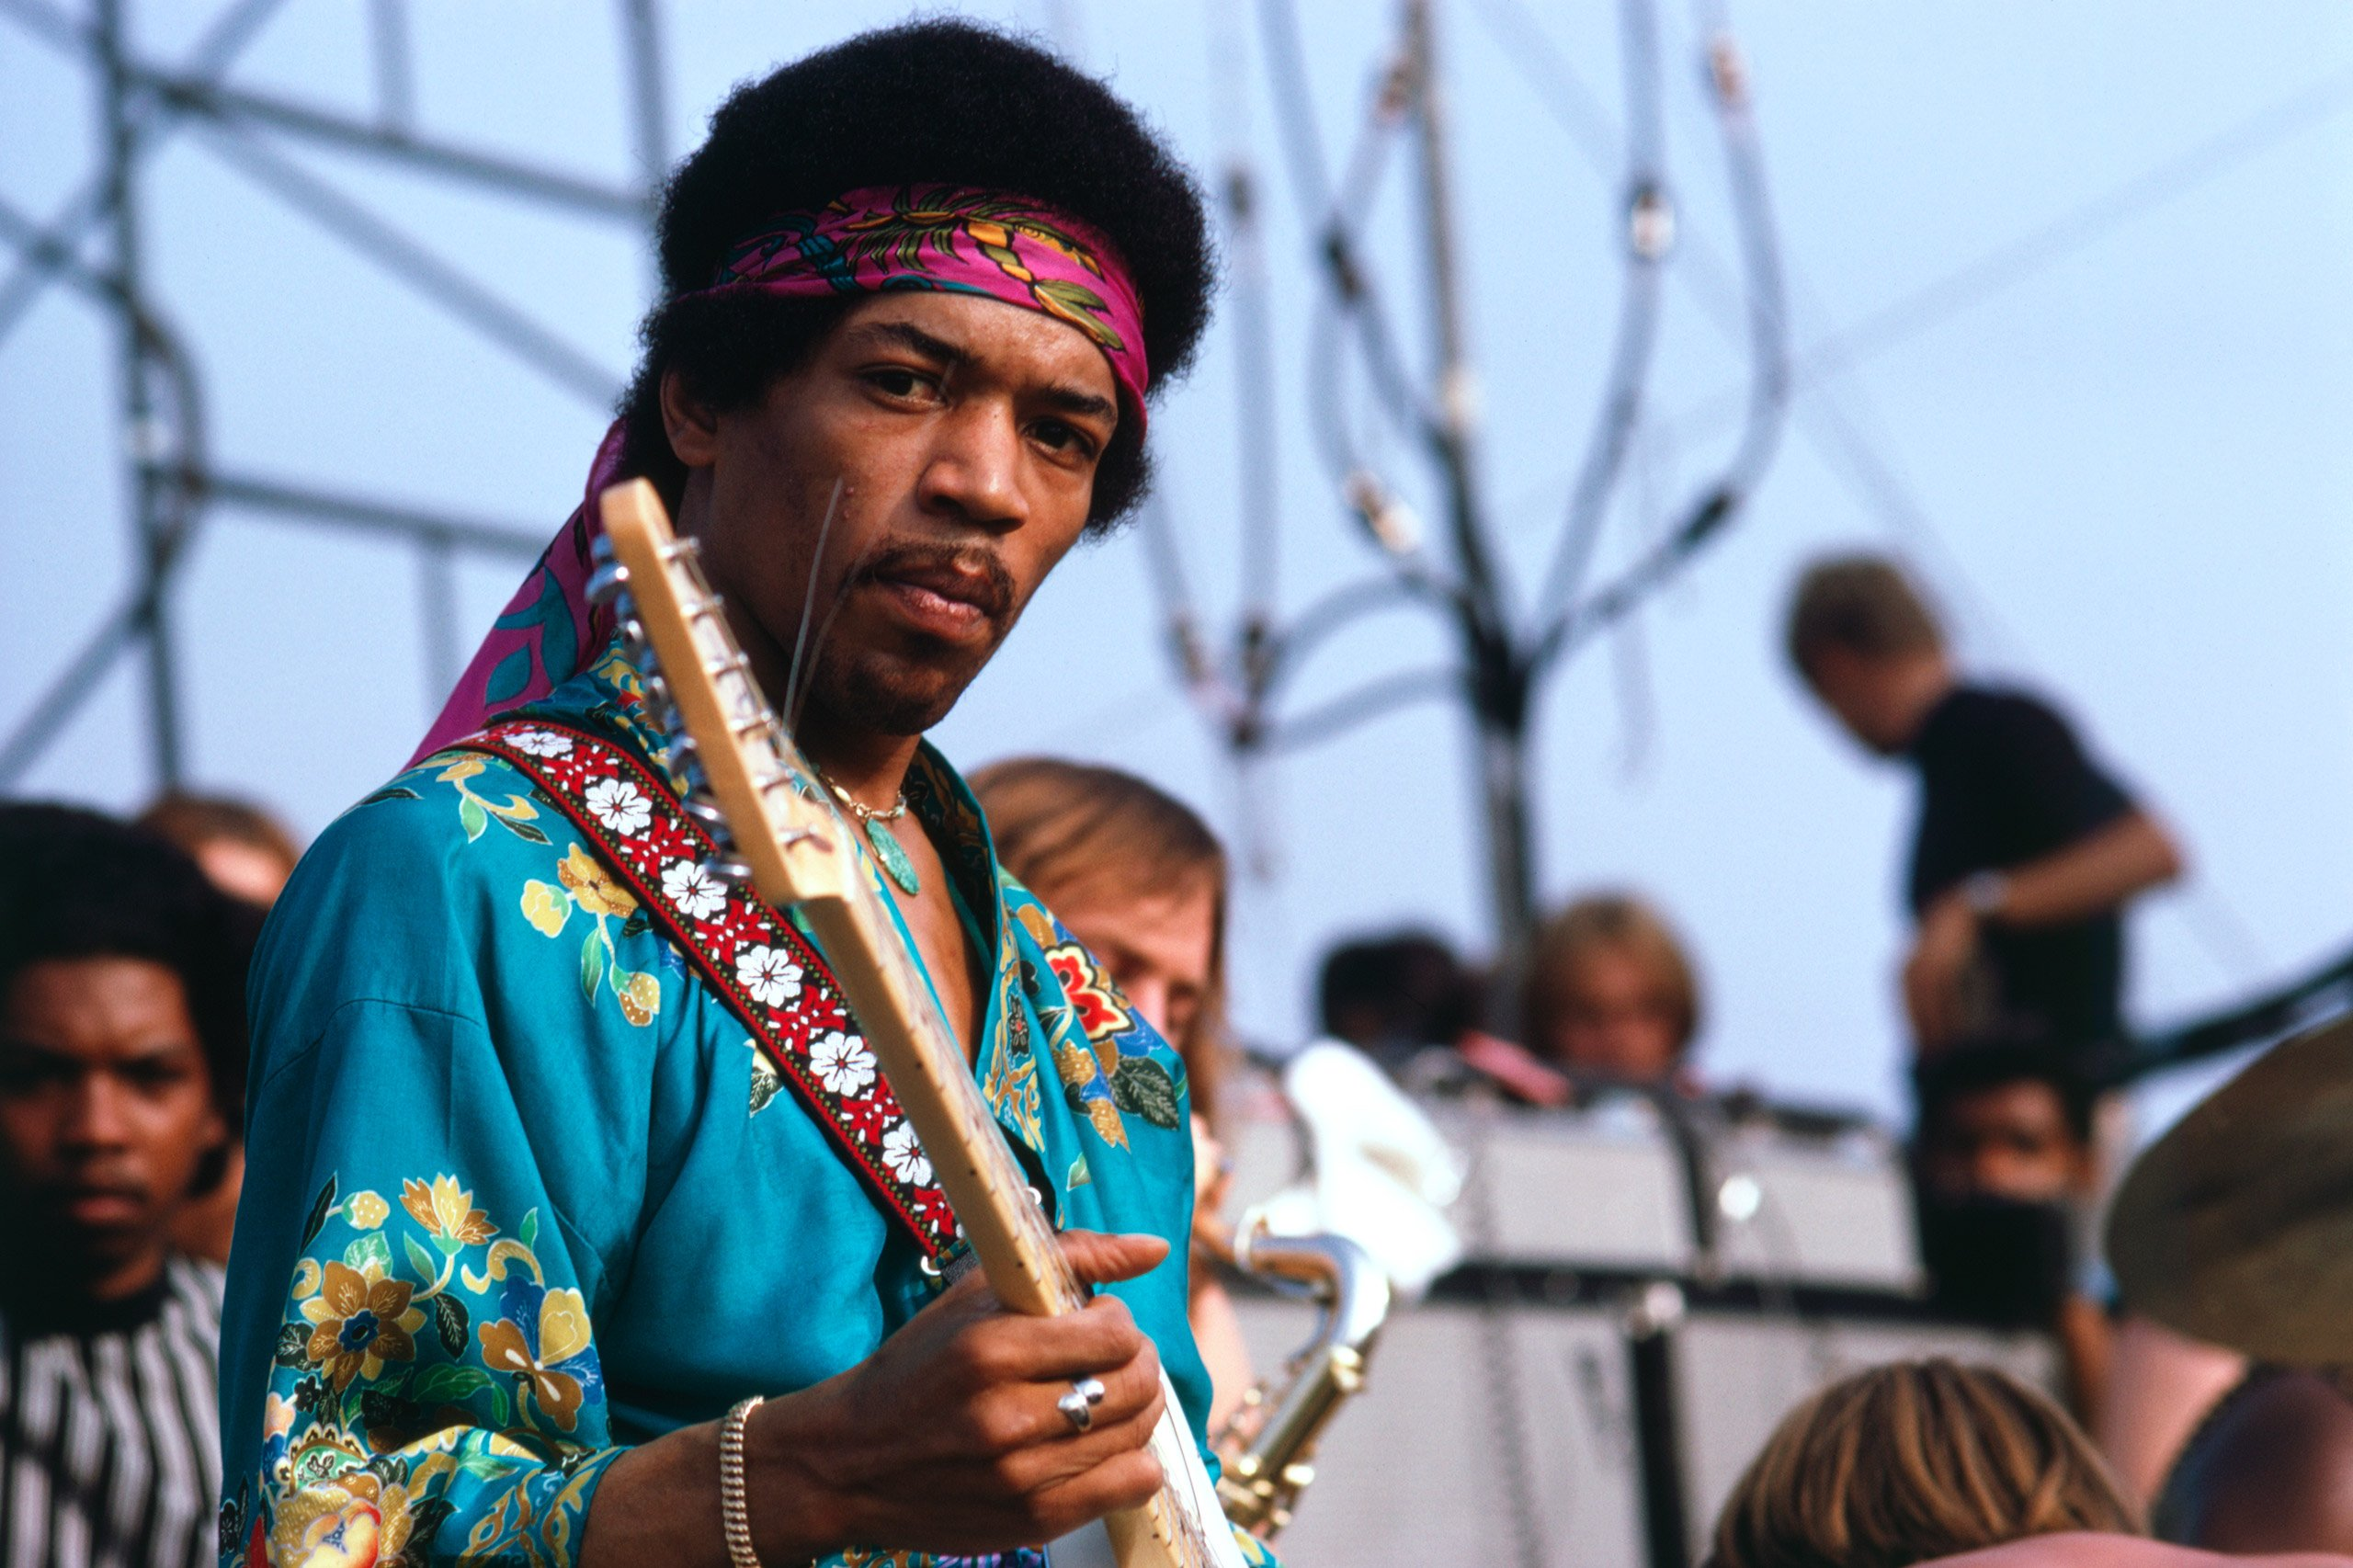 Jimi Hendrix at Newport Pop Festival